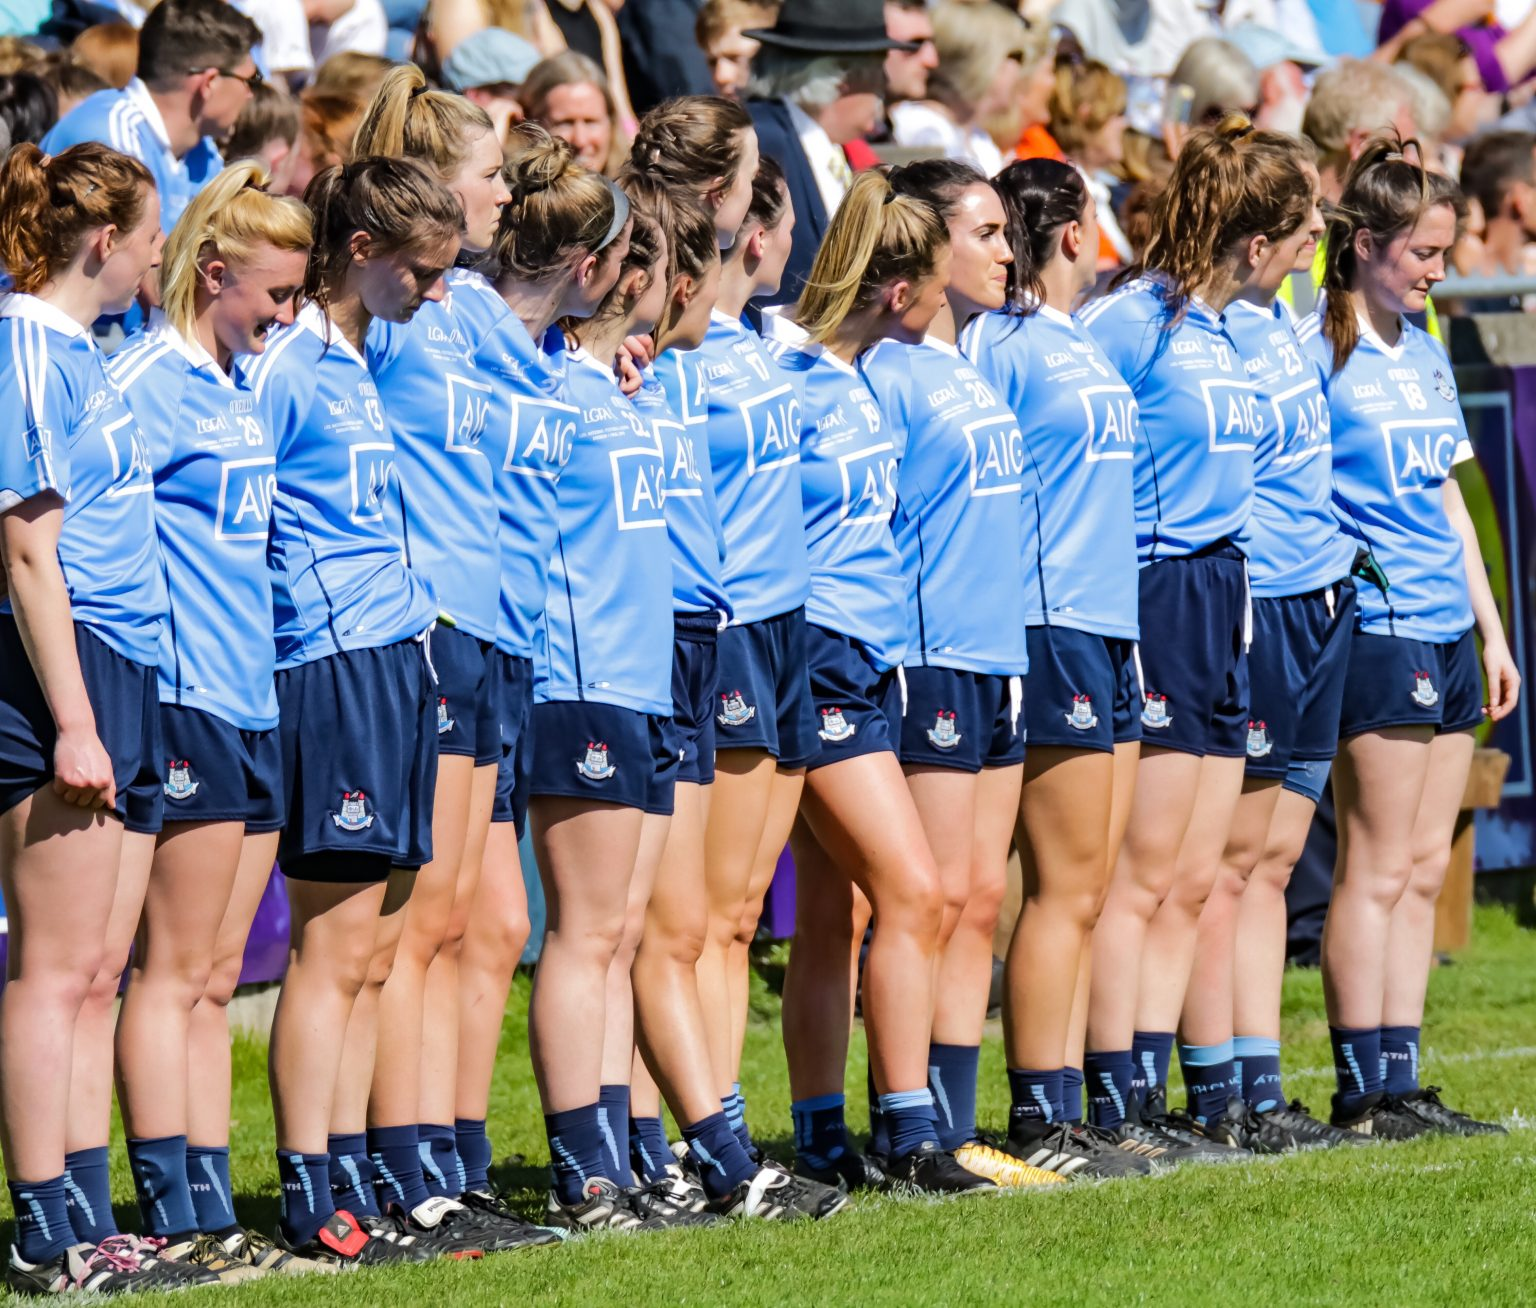 Twelve Dublin Ladies Football players in sky blue jerseys stand shoulder to shoulder along the sideline